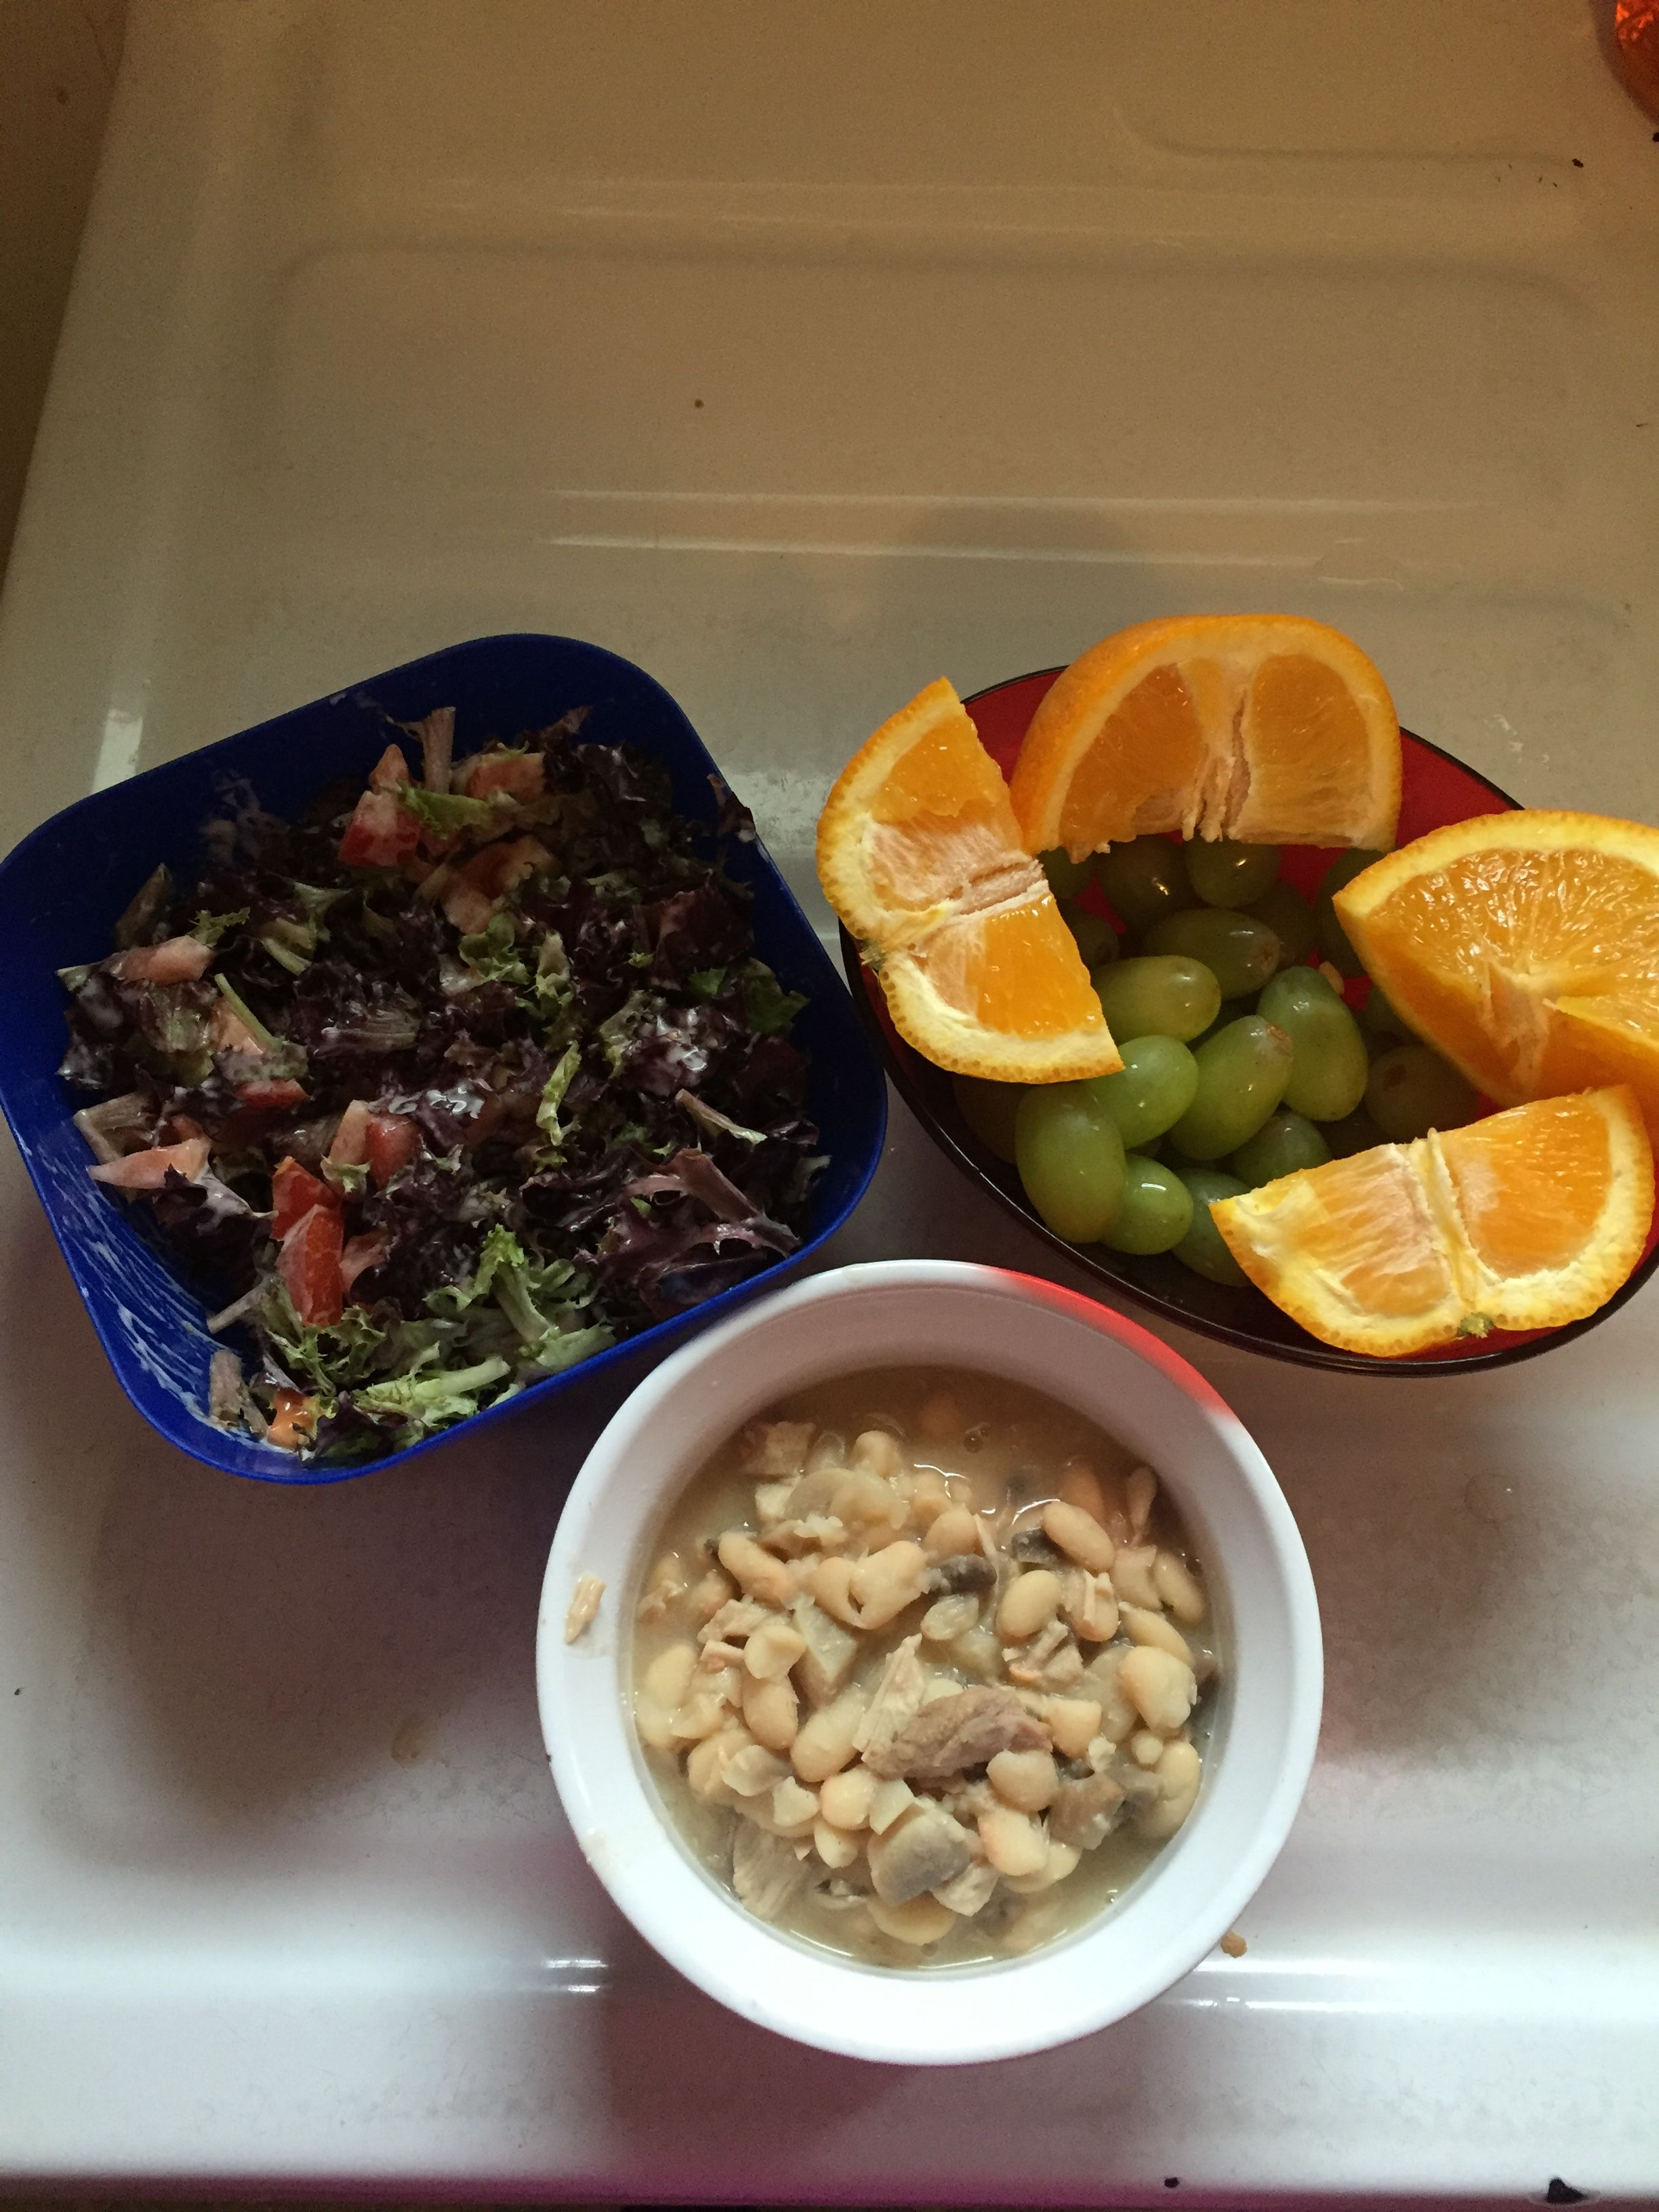 9 Weight watcher points... 1 cup green grapes 1 medium orange 1 1/2 cups leaf lettuce 1 medium tomato 2 Tablespoon Kroger light ranch dressing 3/4 cup canned northern beans 1/2 cup cooked mushrooms 3 oz cooked pork tenderloin